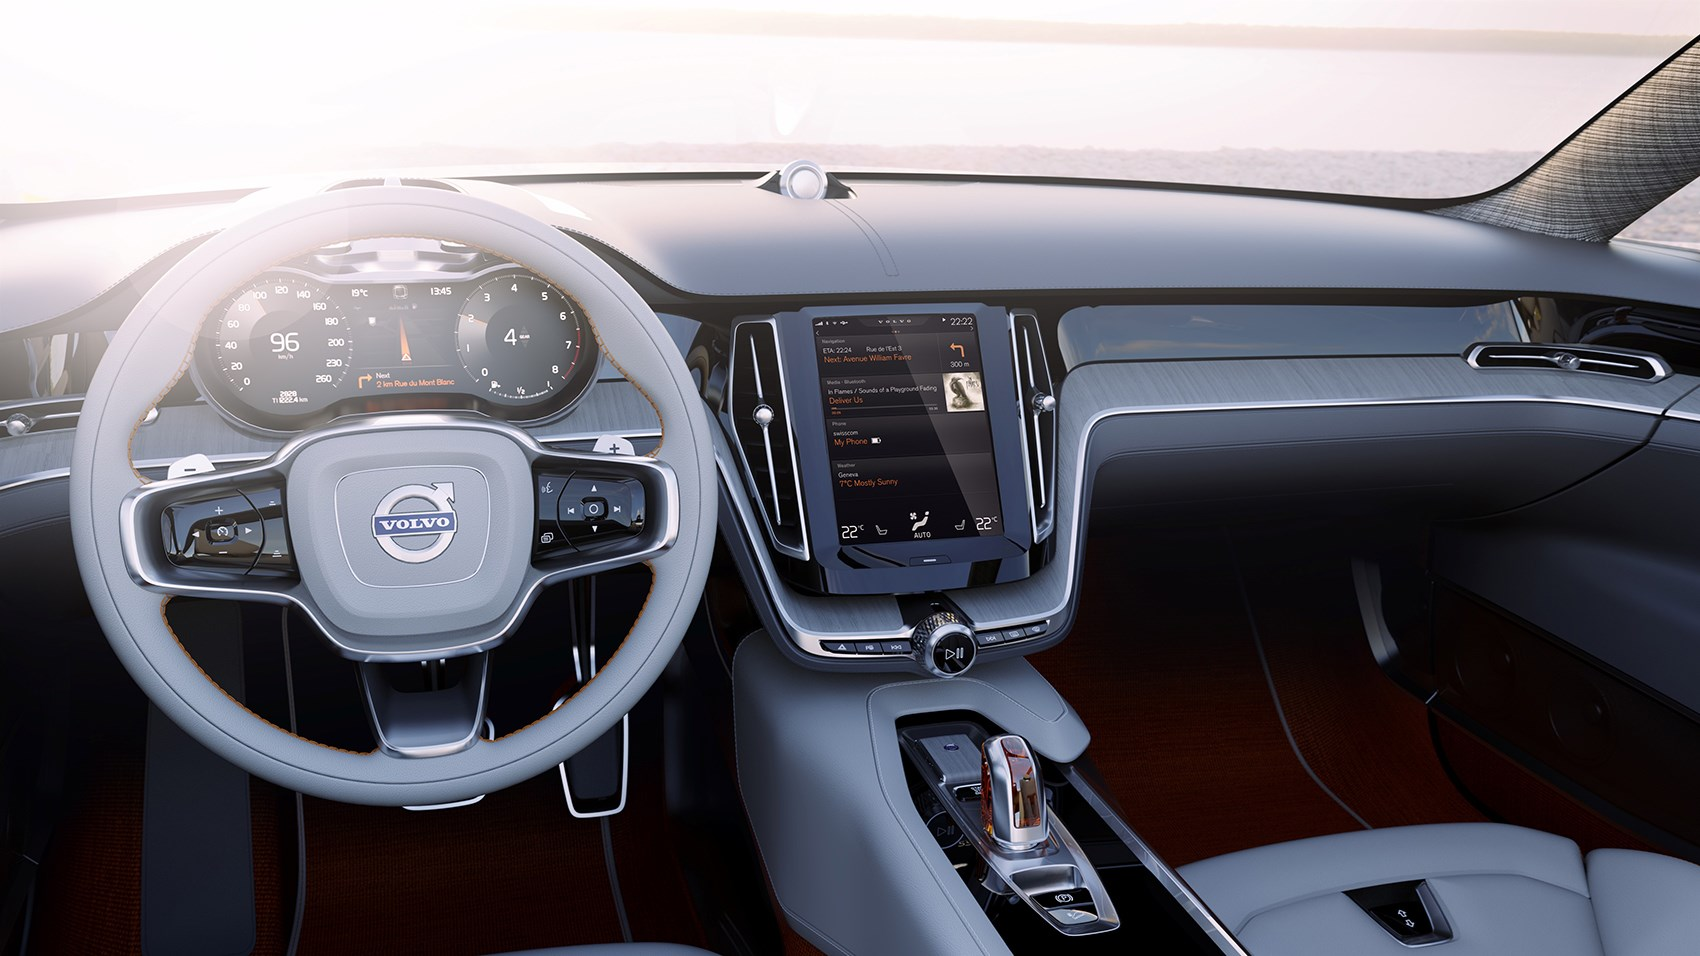 Volvo s90 and v90 big volvos are back in 2016 by car magazine for Auto interieur bekleden prijs